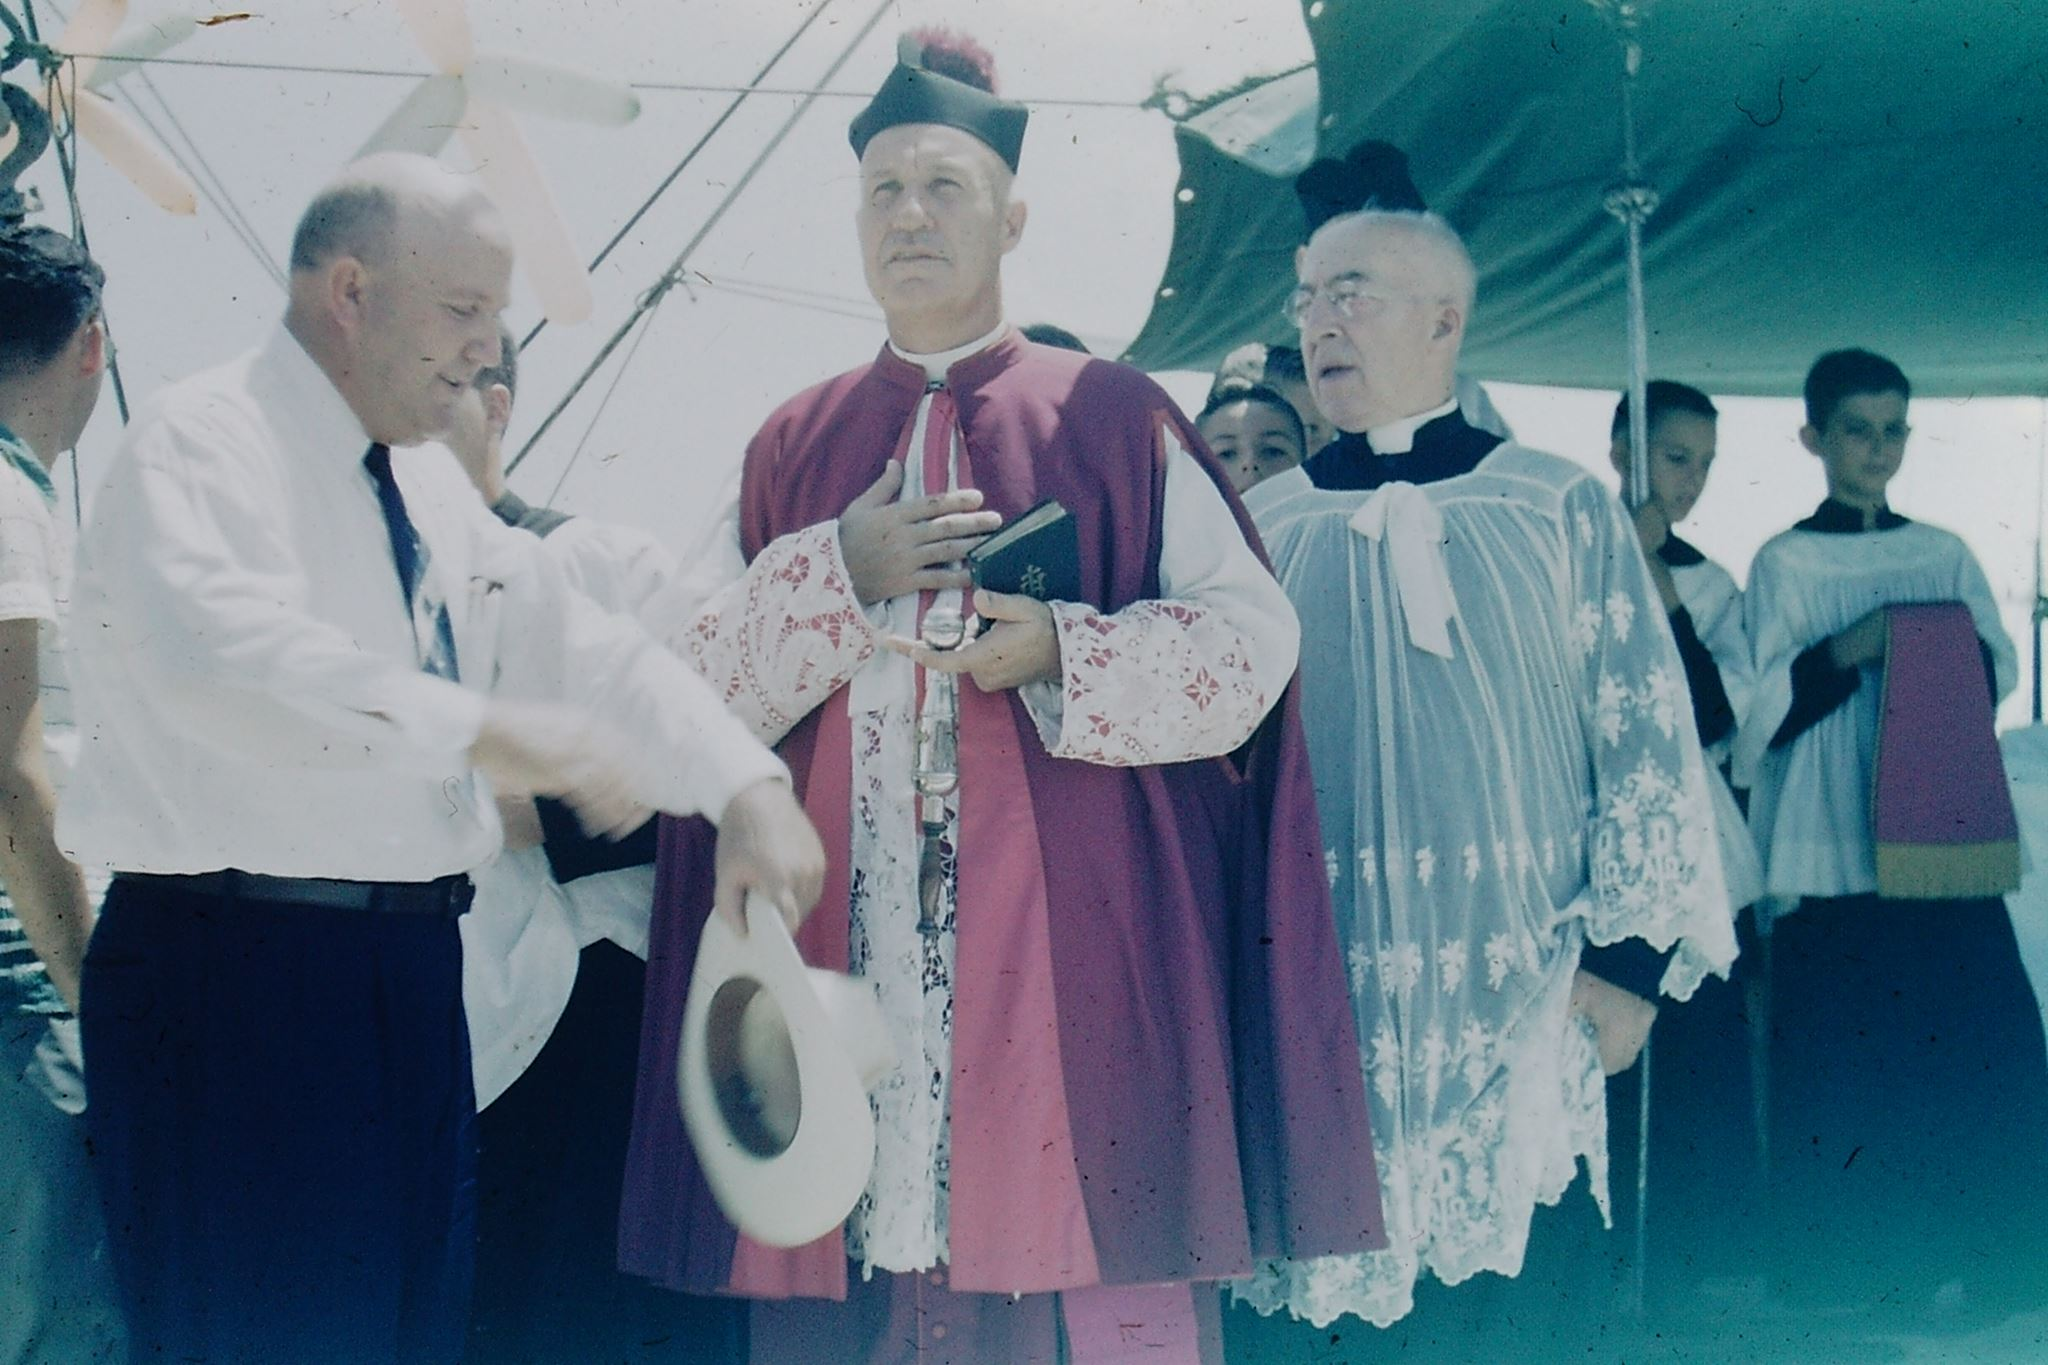 Blessing photo from the 1950s.